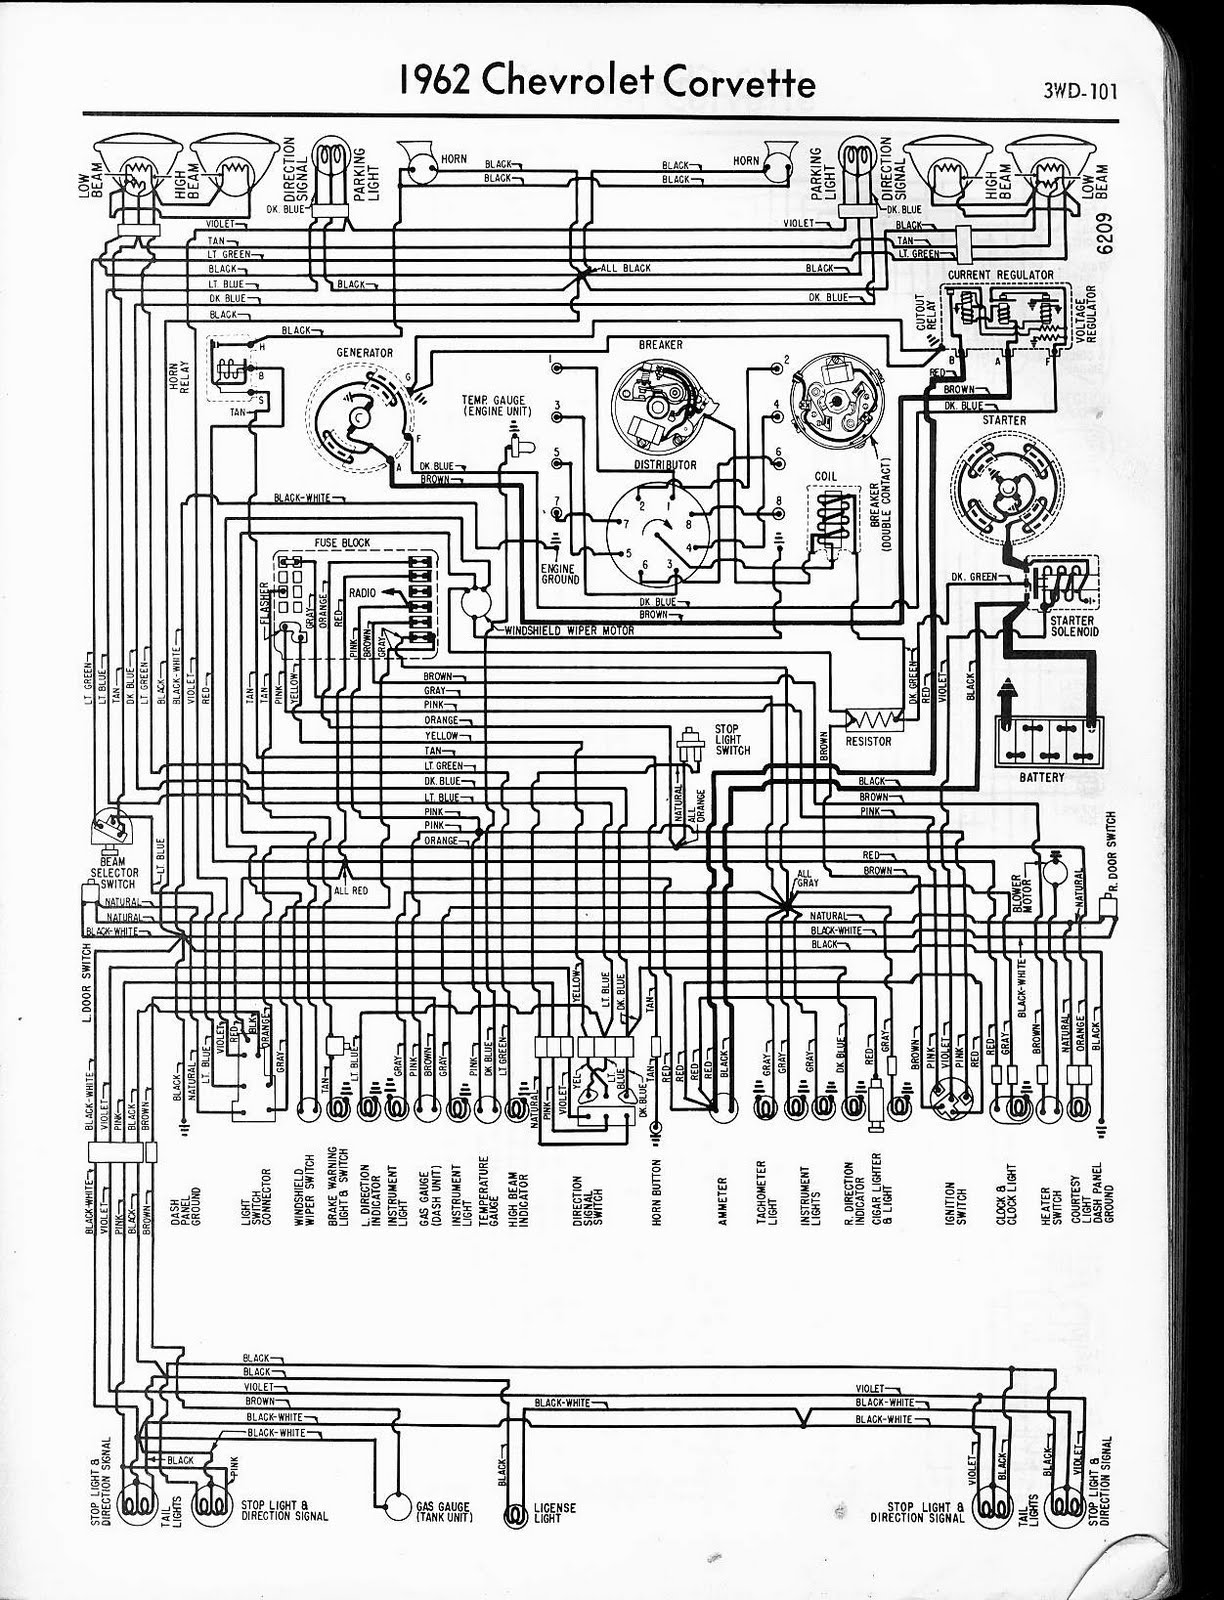 1965 headlight wire harness diagram